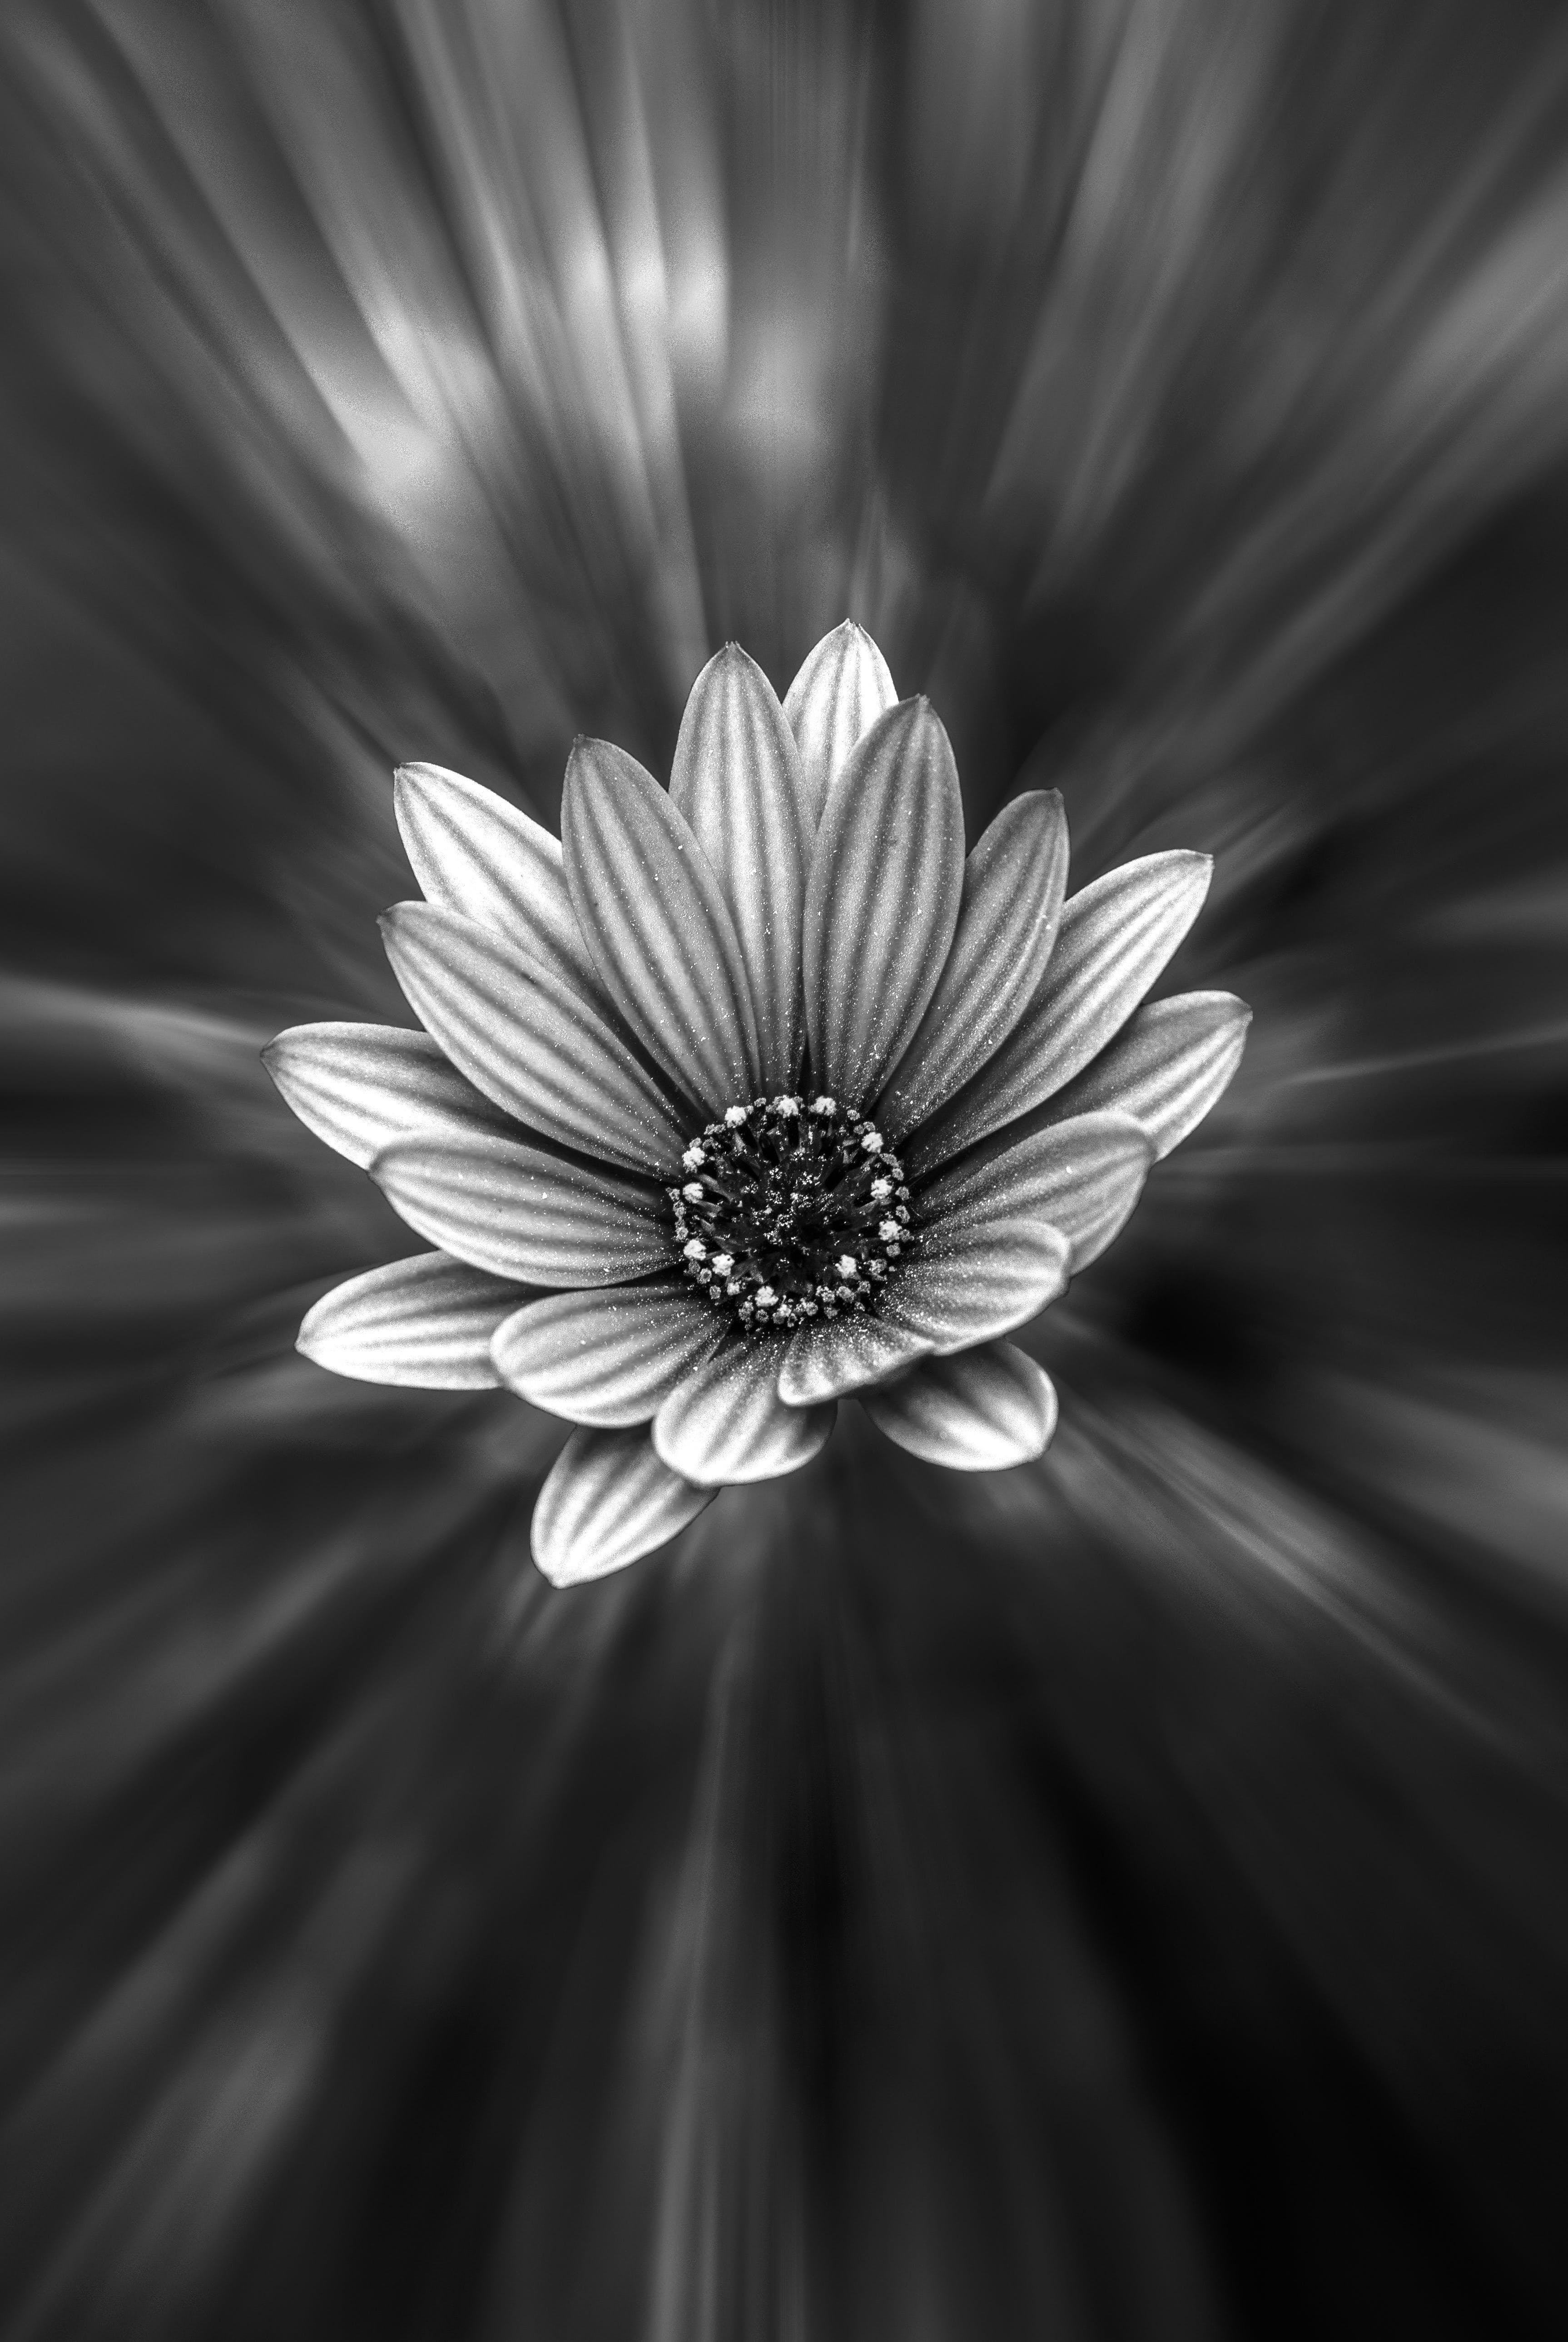 Free stock photo of black-and-white, flower, blossom